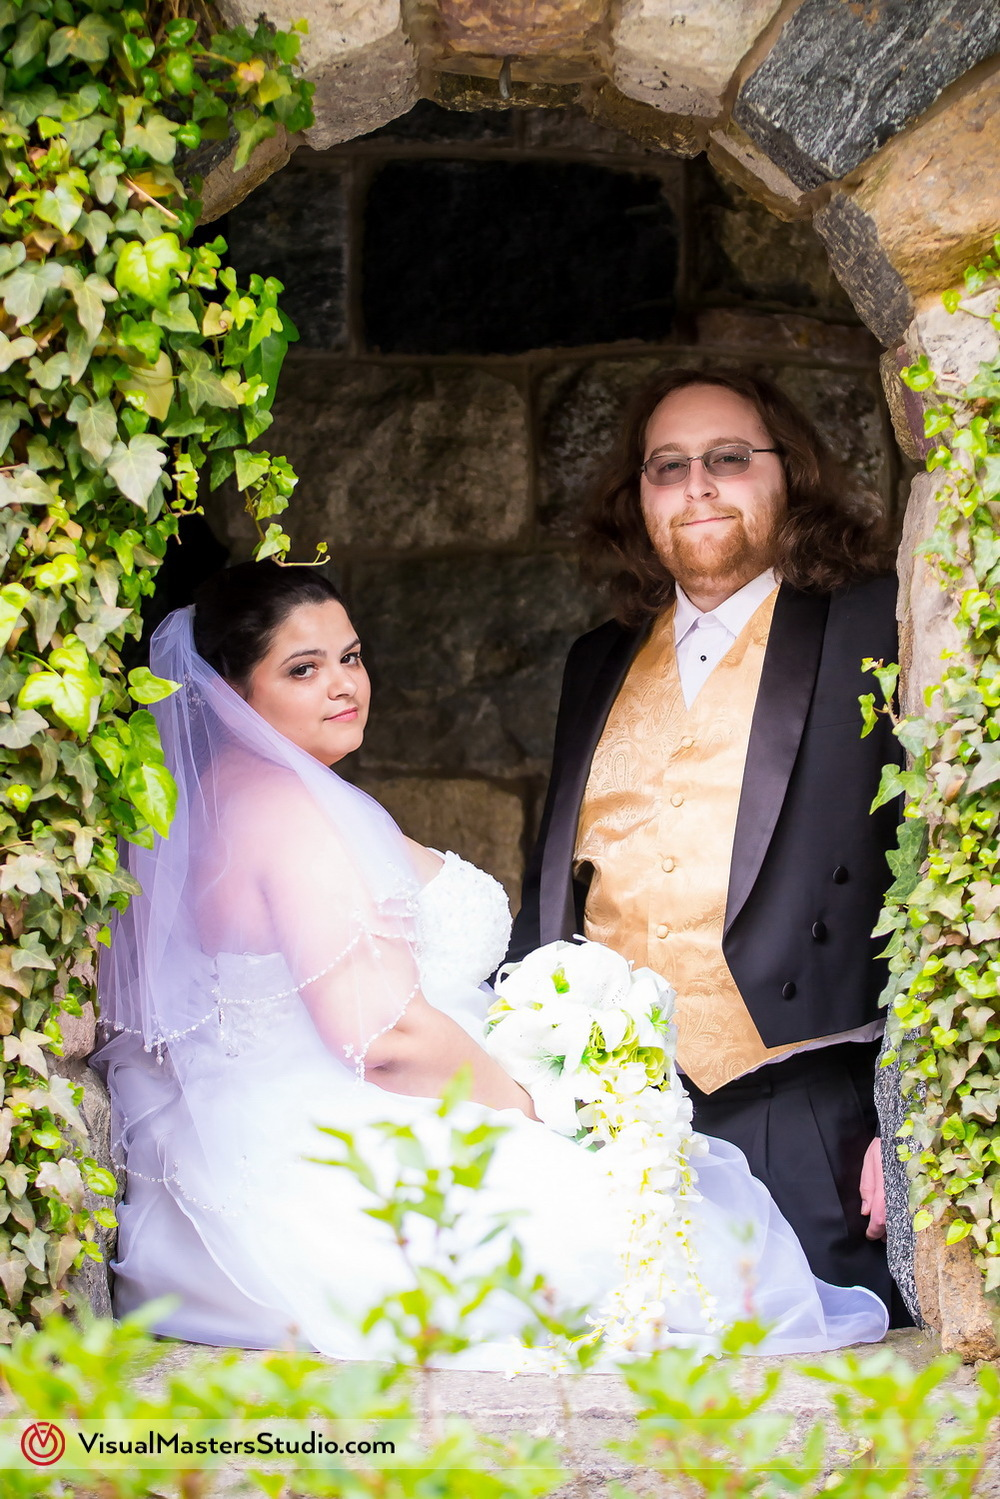 Rustic Wedding Photo Ideas by Visual Masters